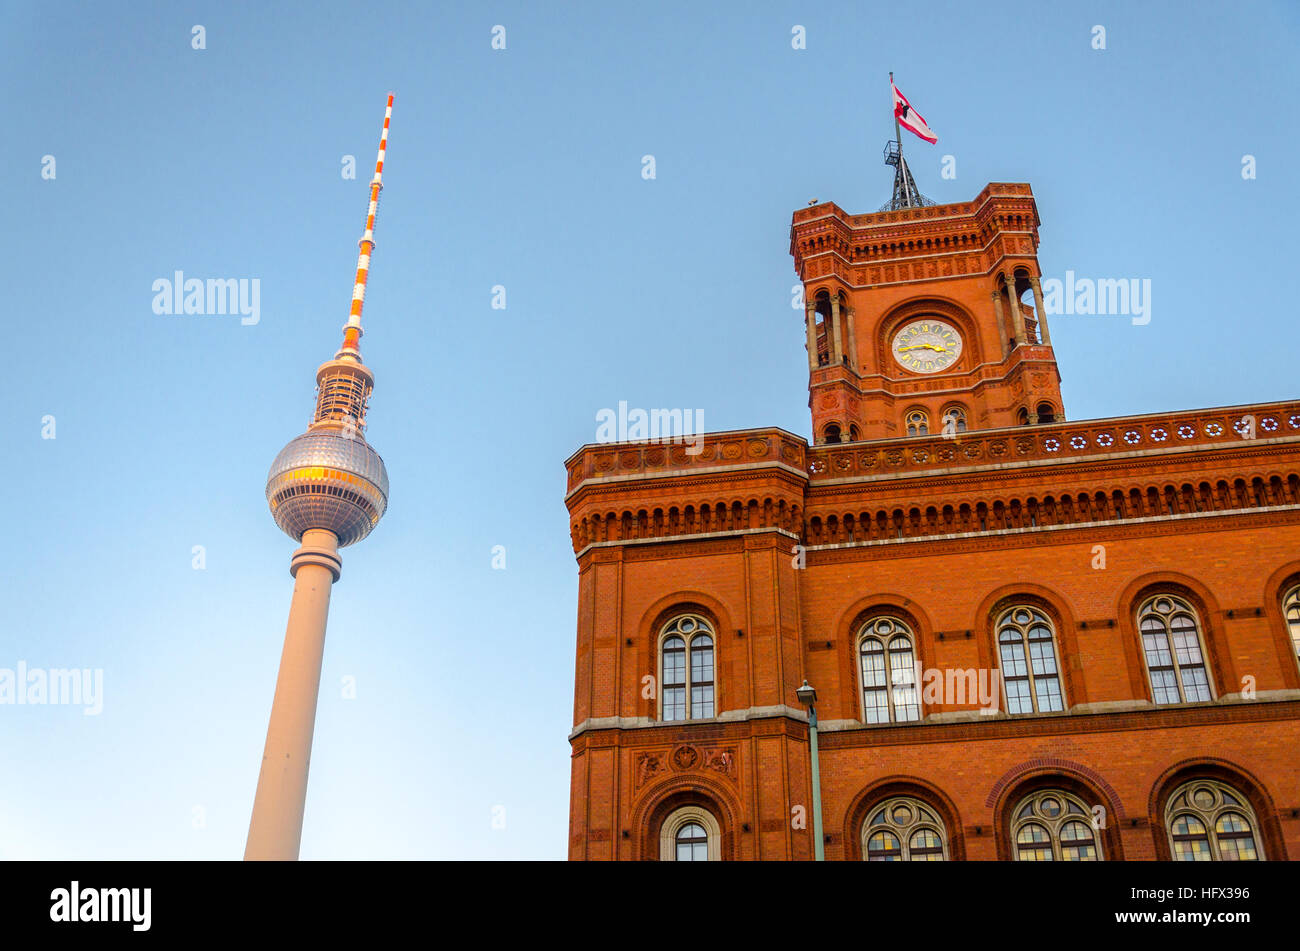 Fernsehturm TV Tower, and Rotes Rathaus red brick building. Berlin, Germany - Stock Image